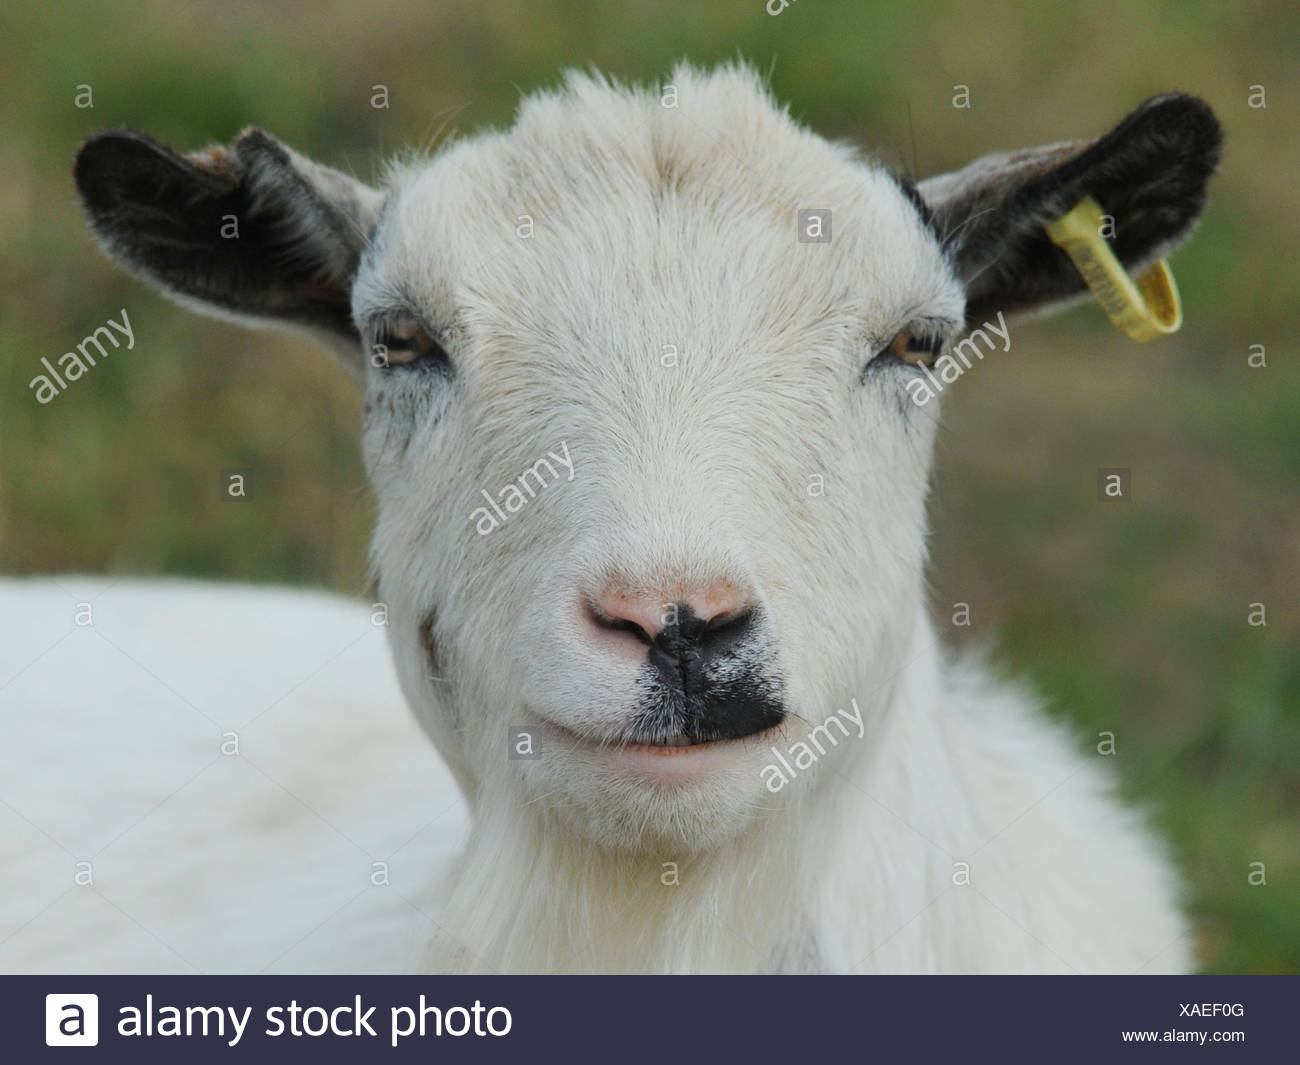 A happy billy goat smiling Stock Photo